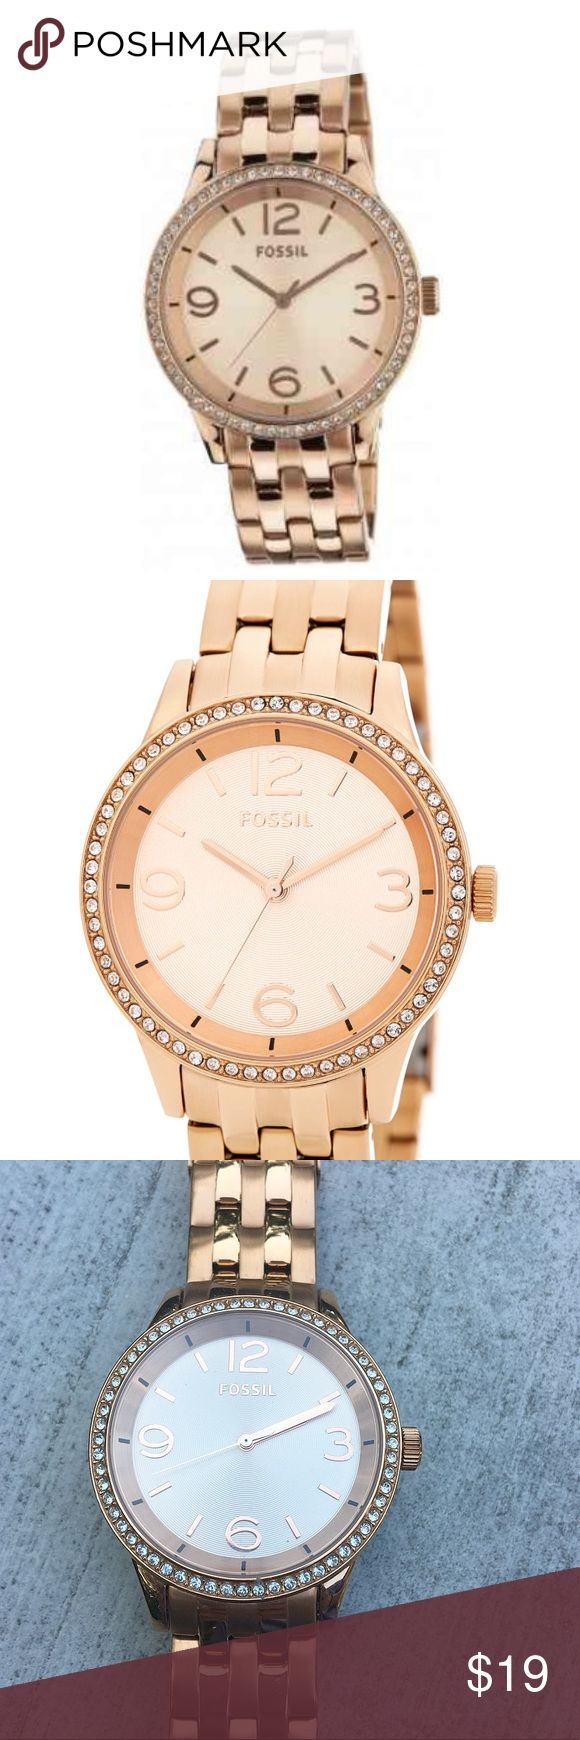 Rose Good Fossil Watch Women's rose gold Fossil watch with link band and swarovsky crystals on bezel. Watch has only been warn once and is in great condition but needs a new battery. Also, the clasp needs to be repaired because it does not close properly. This can be repaired by Fossil if sent to company. Authentic. No trades! Fossil Accessories Watches